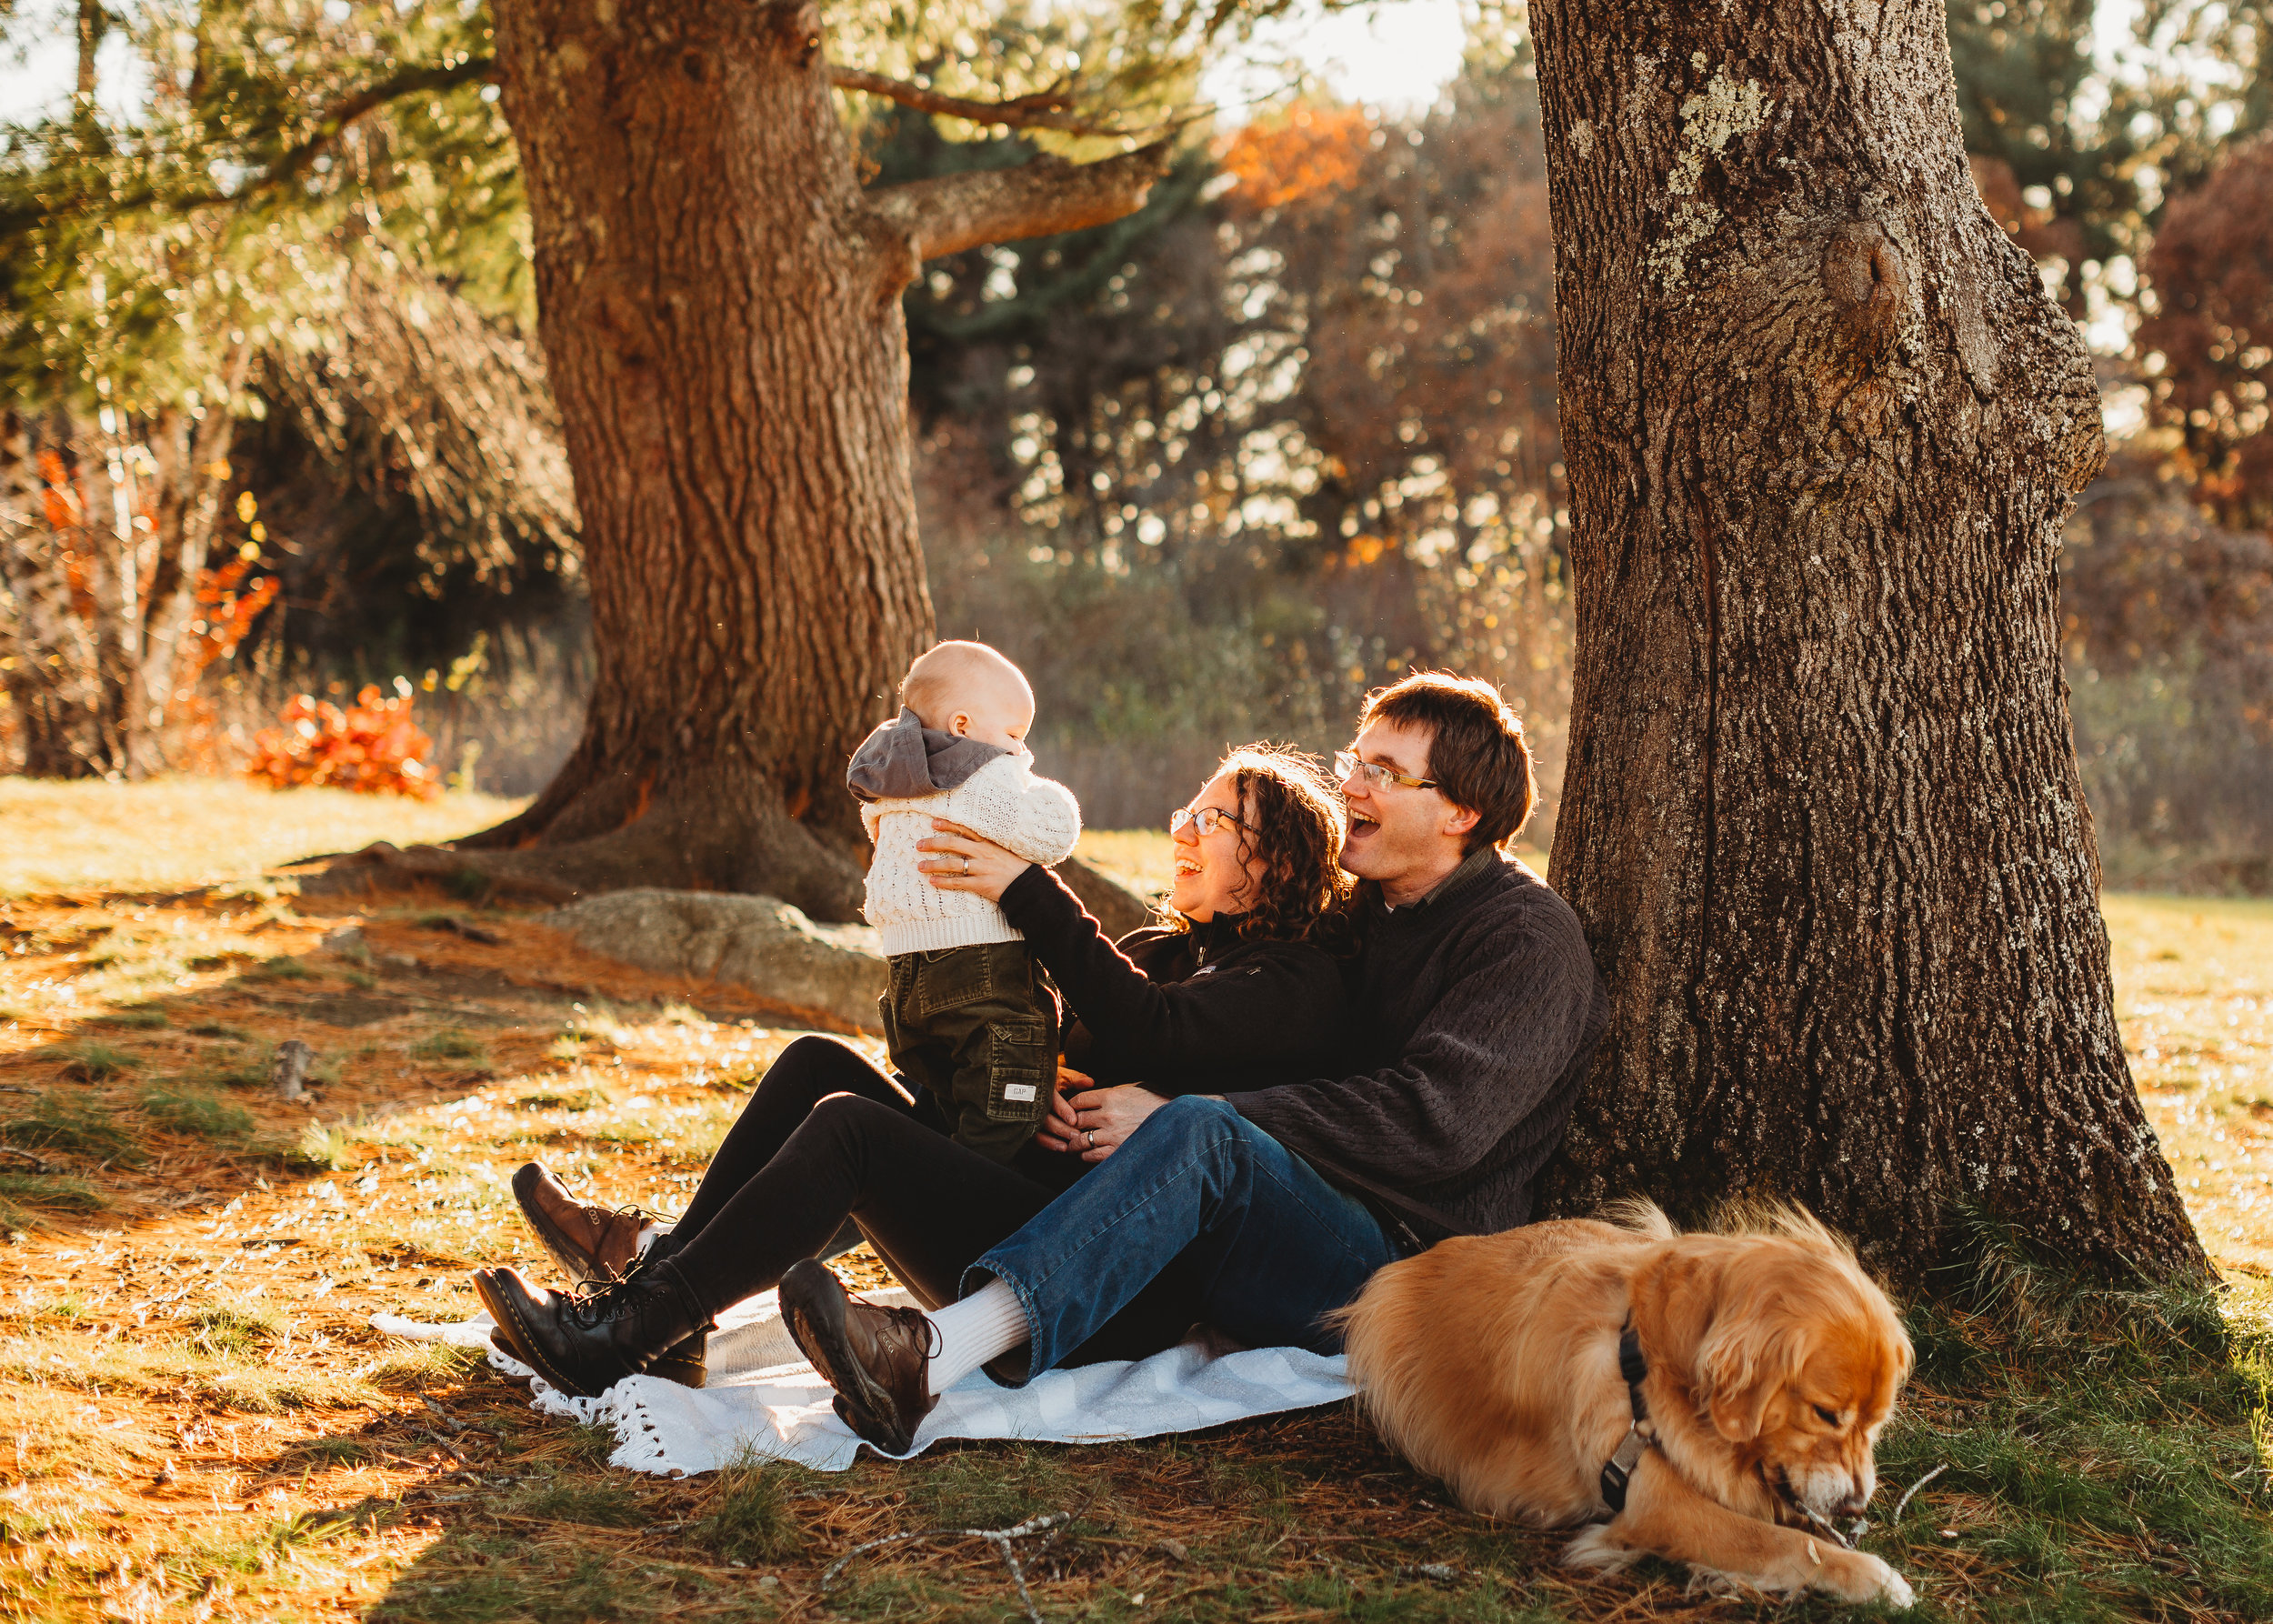 When to book fall family photos. The key: book VERY early to have your pick of dates!